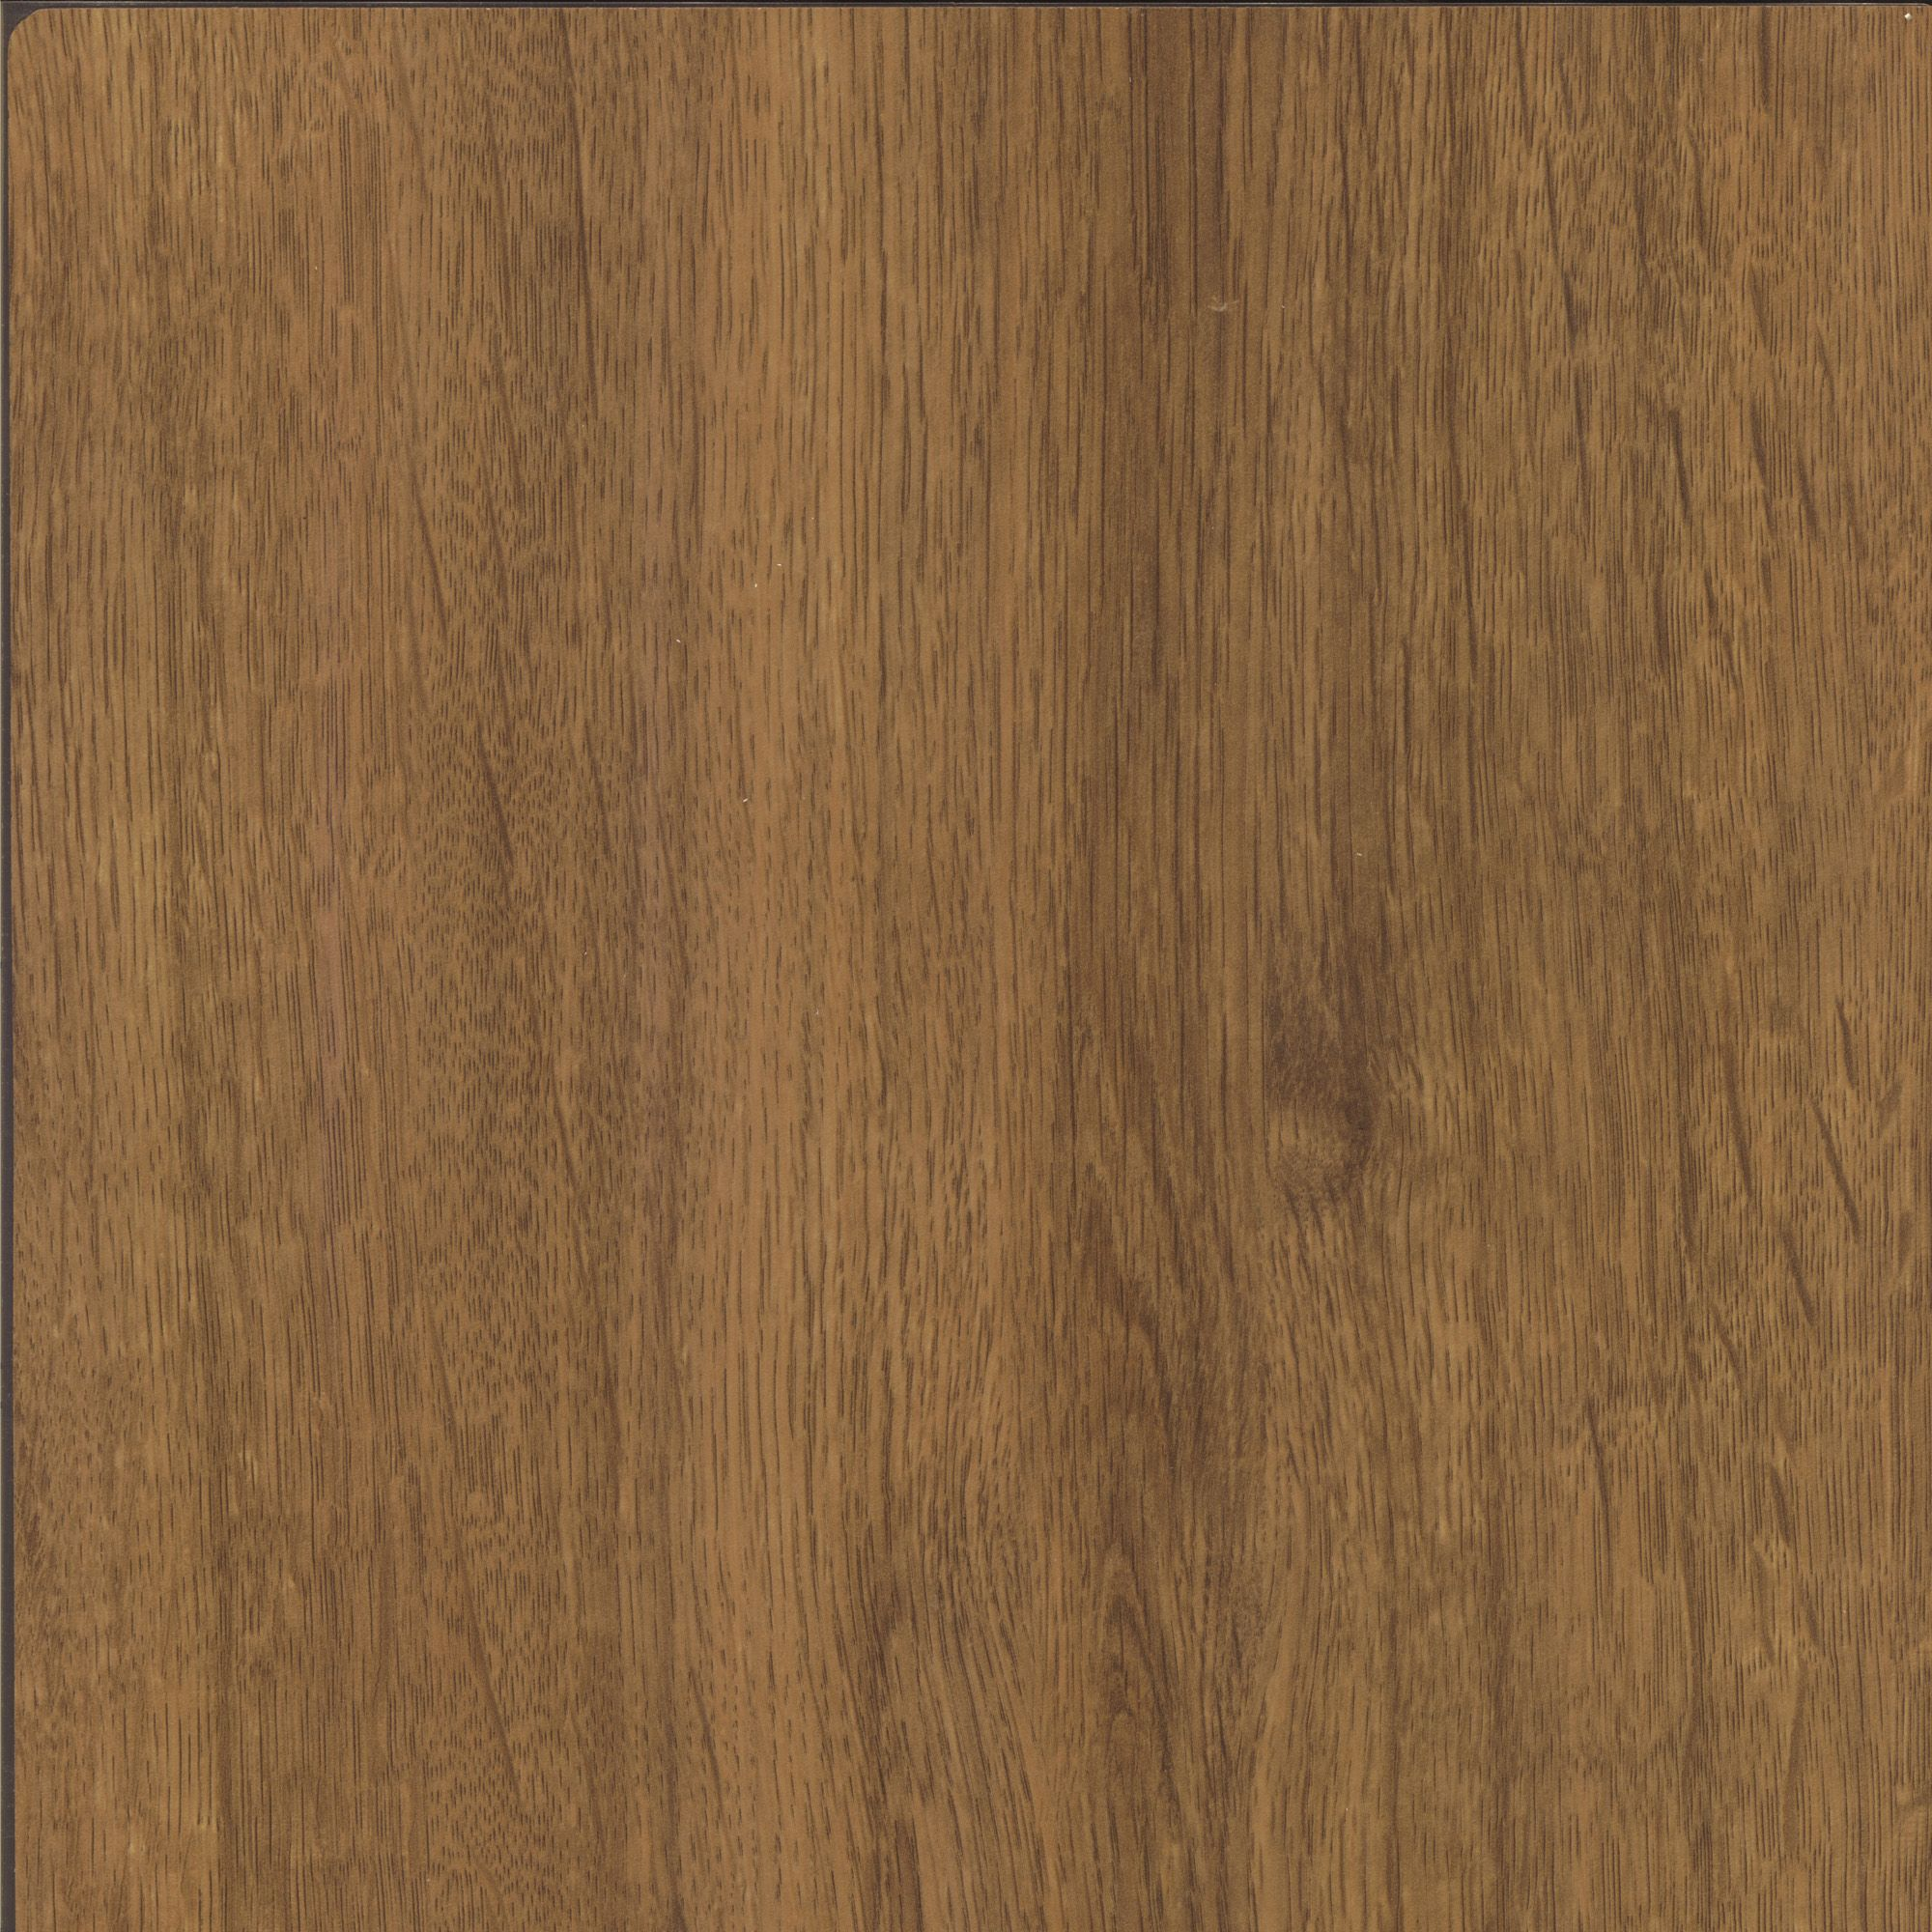 Concertino natural kolberg oak effect laminate flooring 0 for Diy laminate flooring